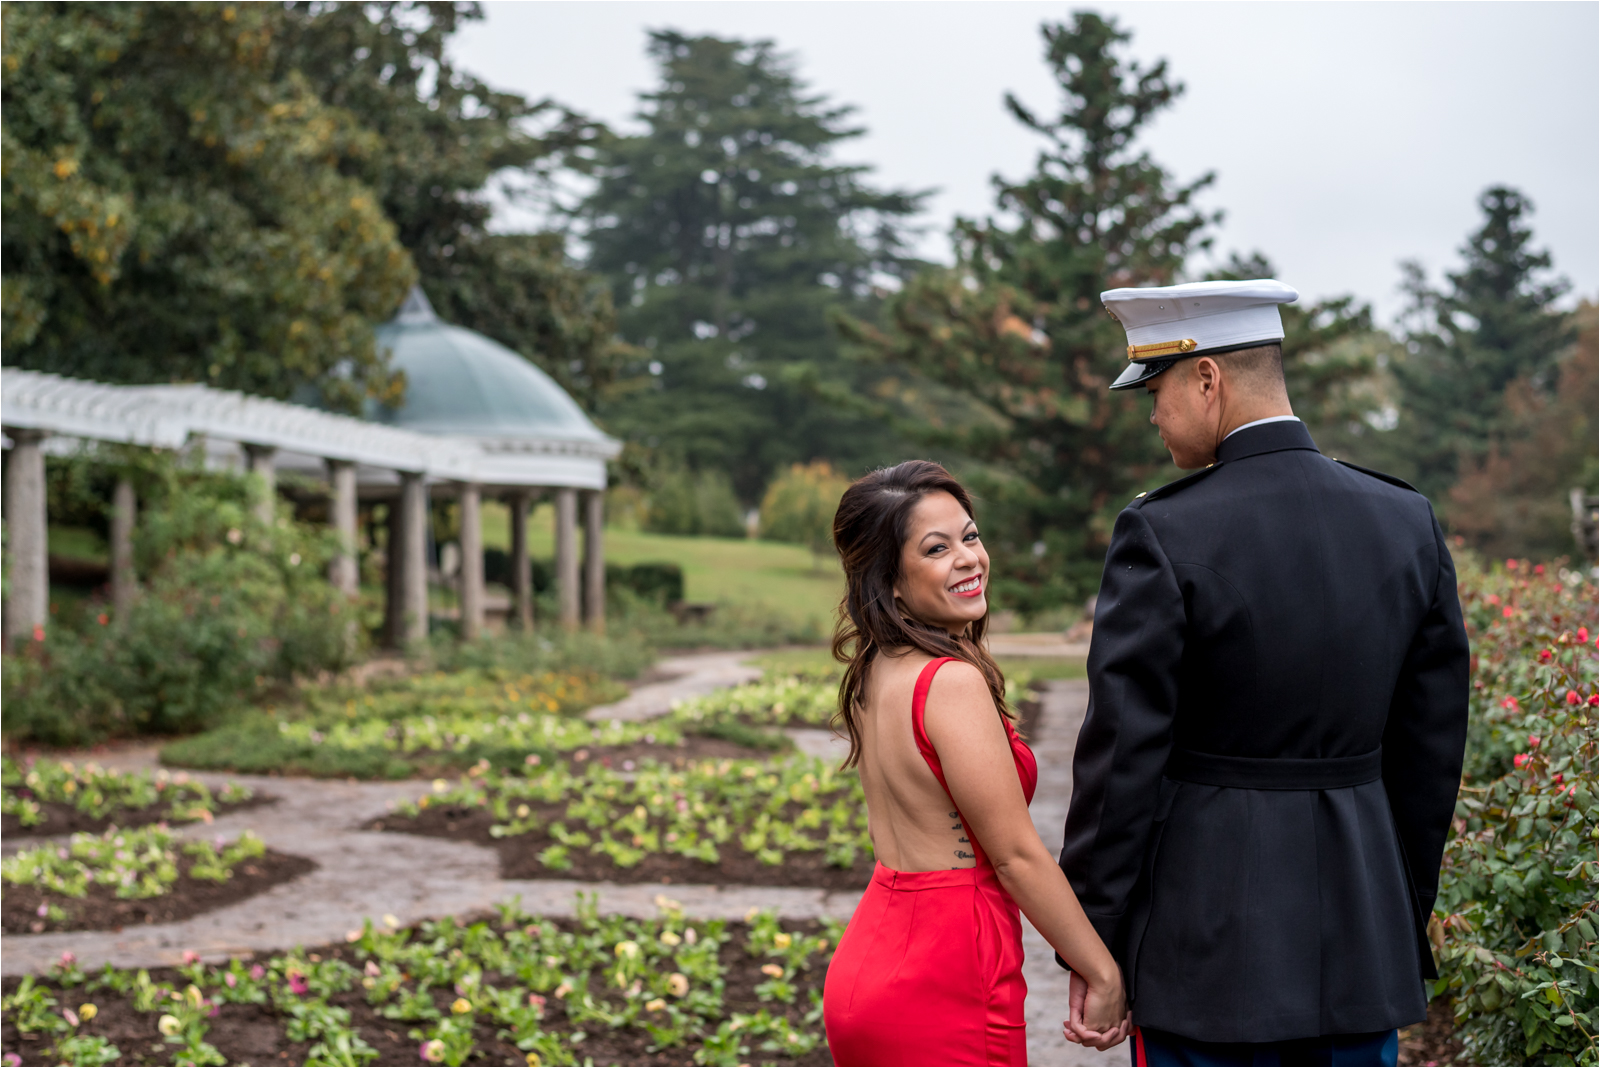 couple-photography-session-focus-on-joy-photography-richmond-virginia-maymont-park-rva-woman-red-dress-gown-military-man-marines-dress-blues-marine-corps-ball